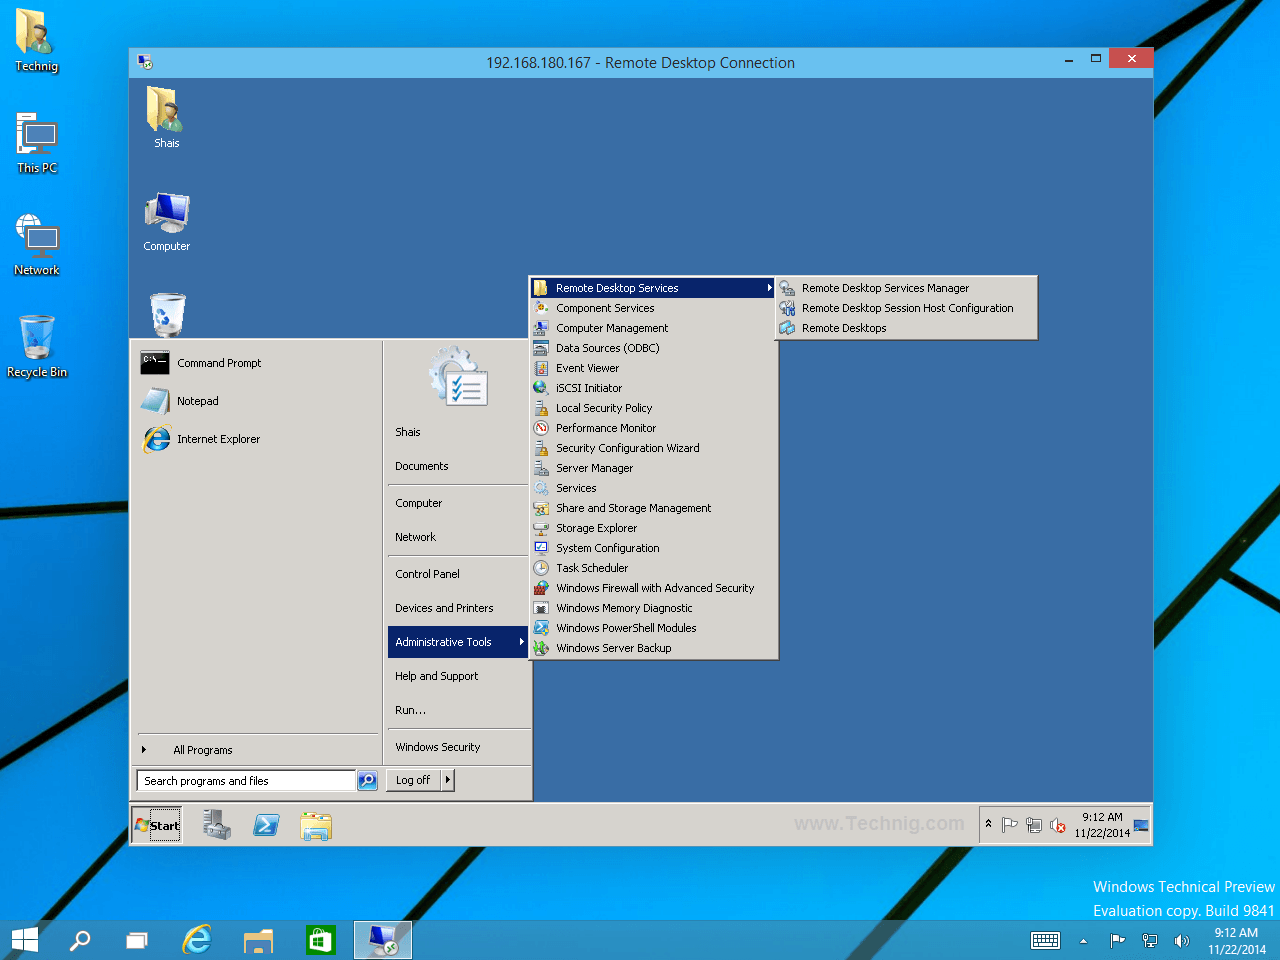 Windows xp sp3 remote desktop client download